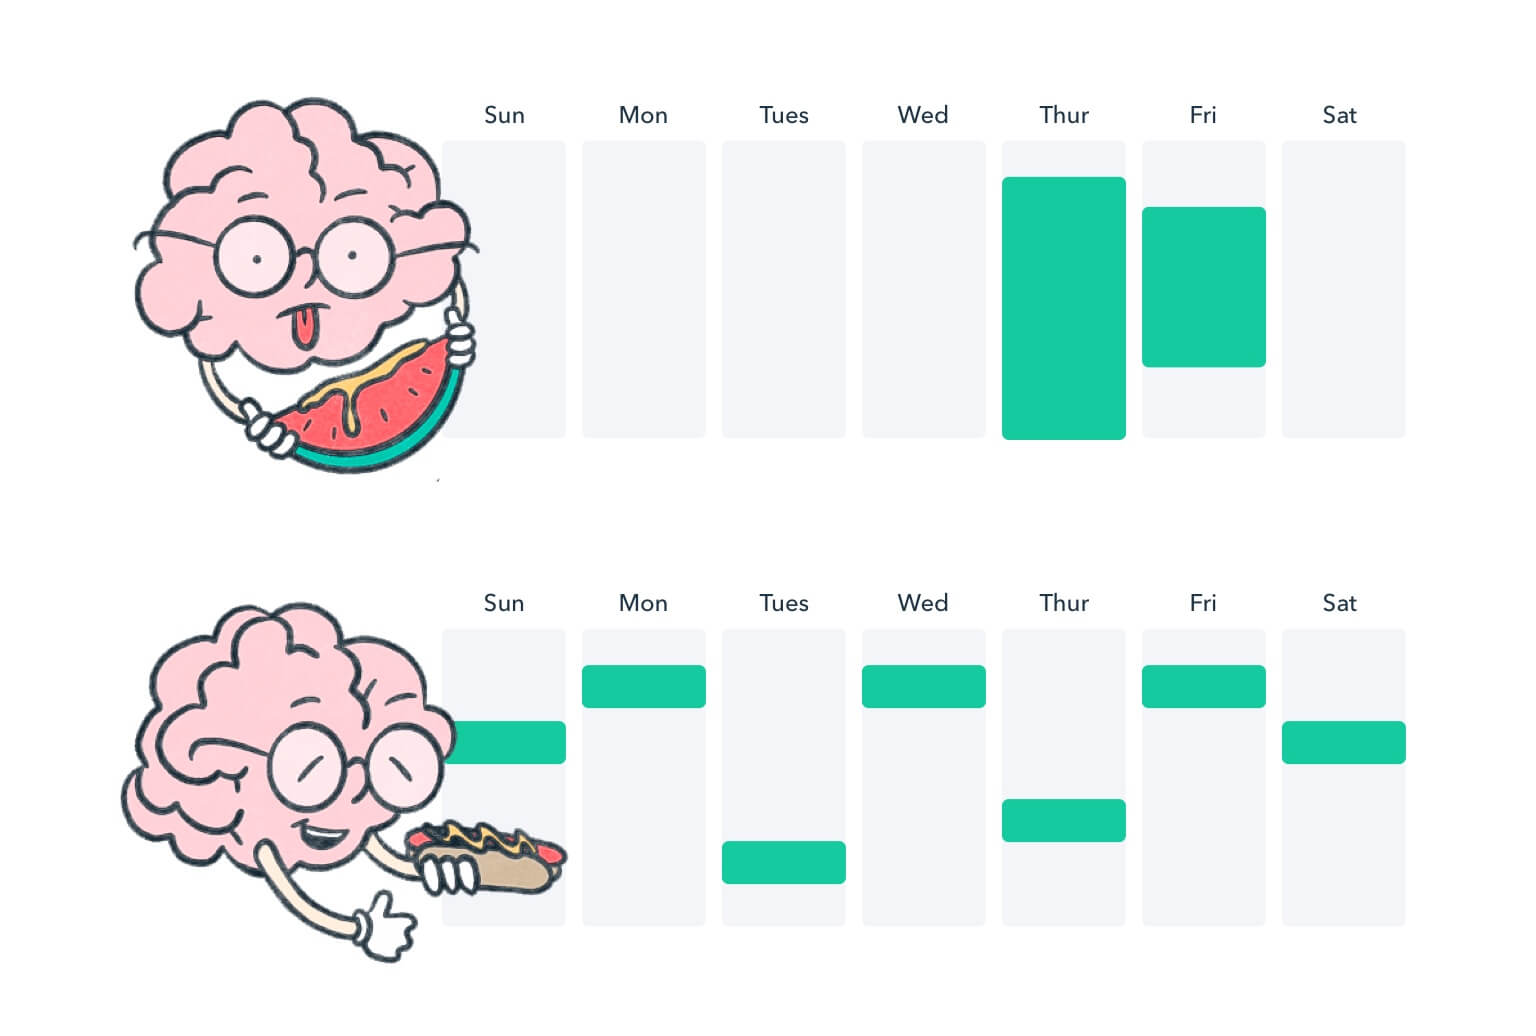 Next to weekly calendar of cramming studying is a brain character holding a watermelon with mustard. Next to a spread out study schedule is a brain character holding a hot dog with mustard.